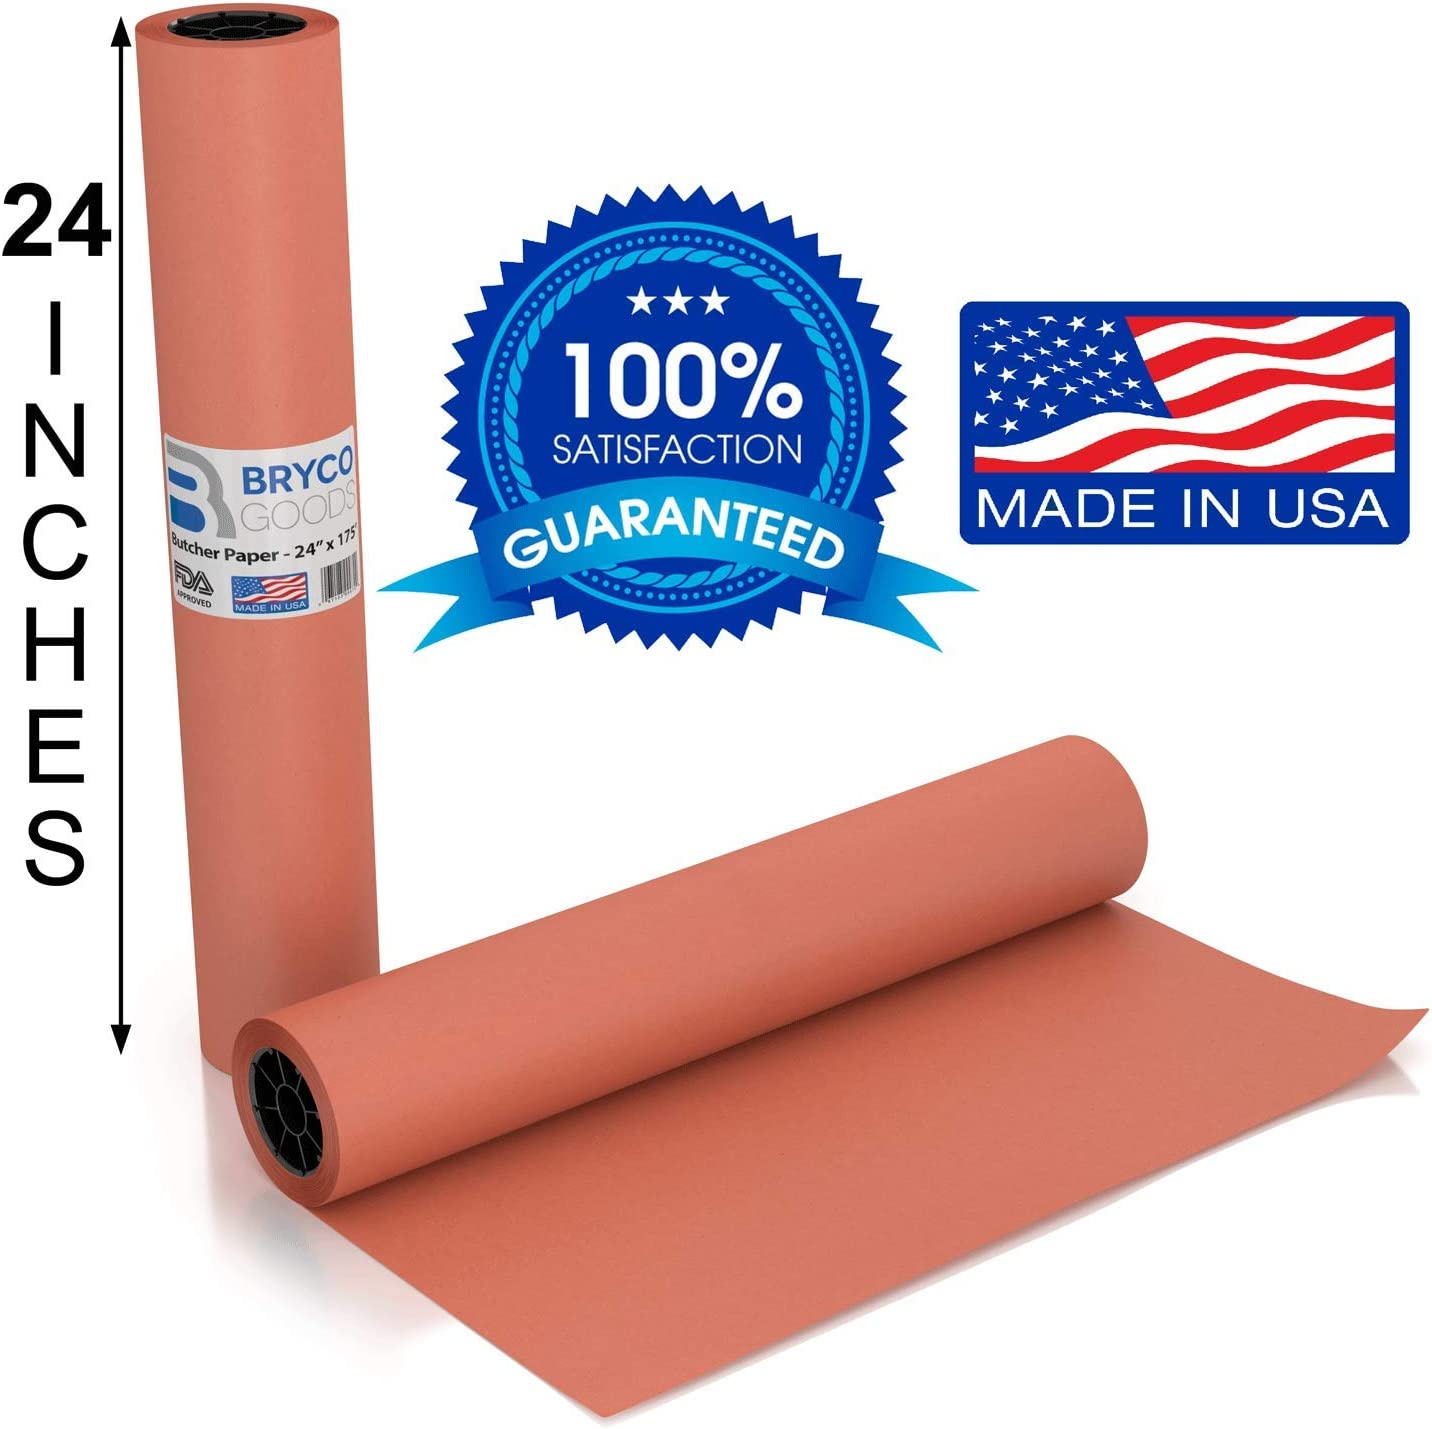 Pink Kraft Butcher Paper Roll - Long 24 Inch x 175 Feet (2100 Inch) - Food Grade FDA Approved – Great Smoking Wrapping Paper for Meat of All Varieties – Made in USA – Unbleached, Unwaxed & Uncoated